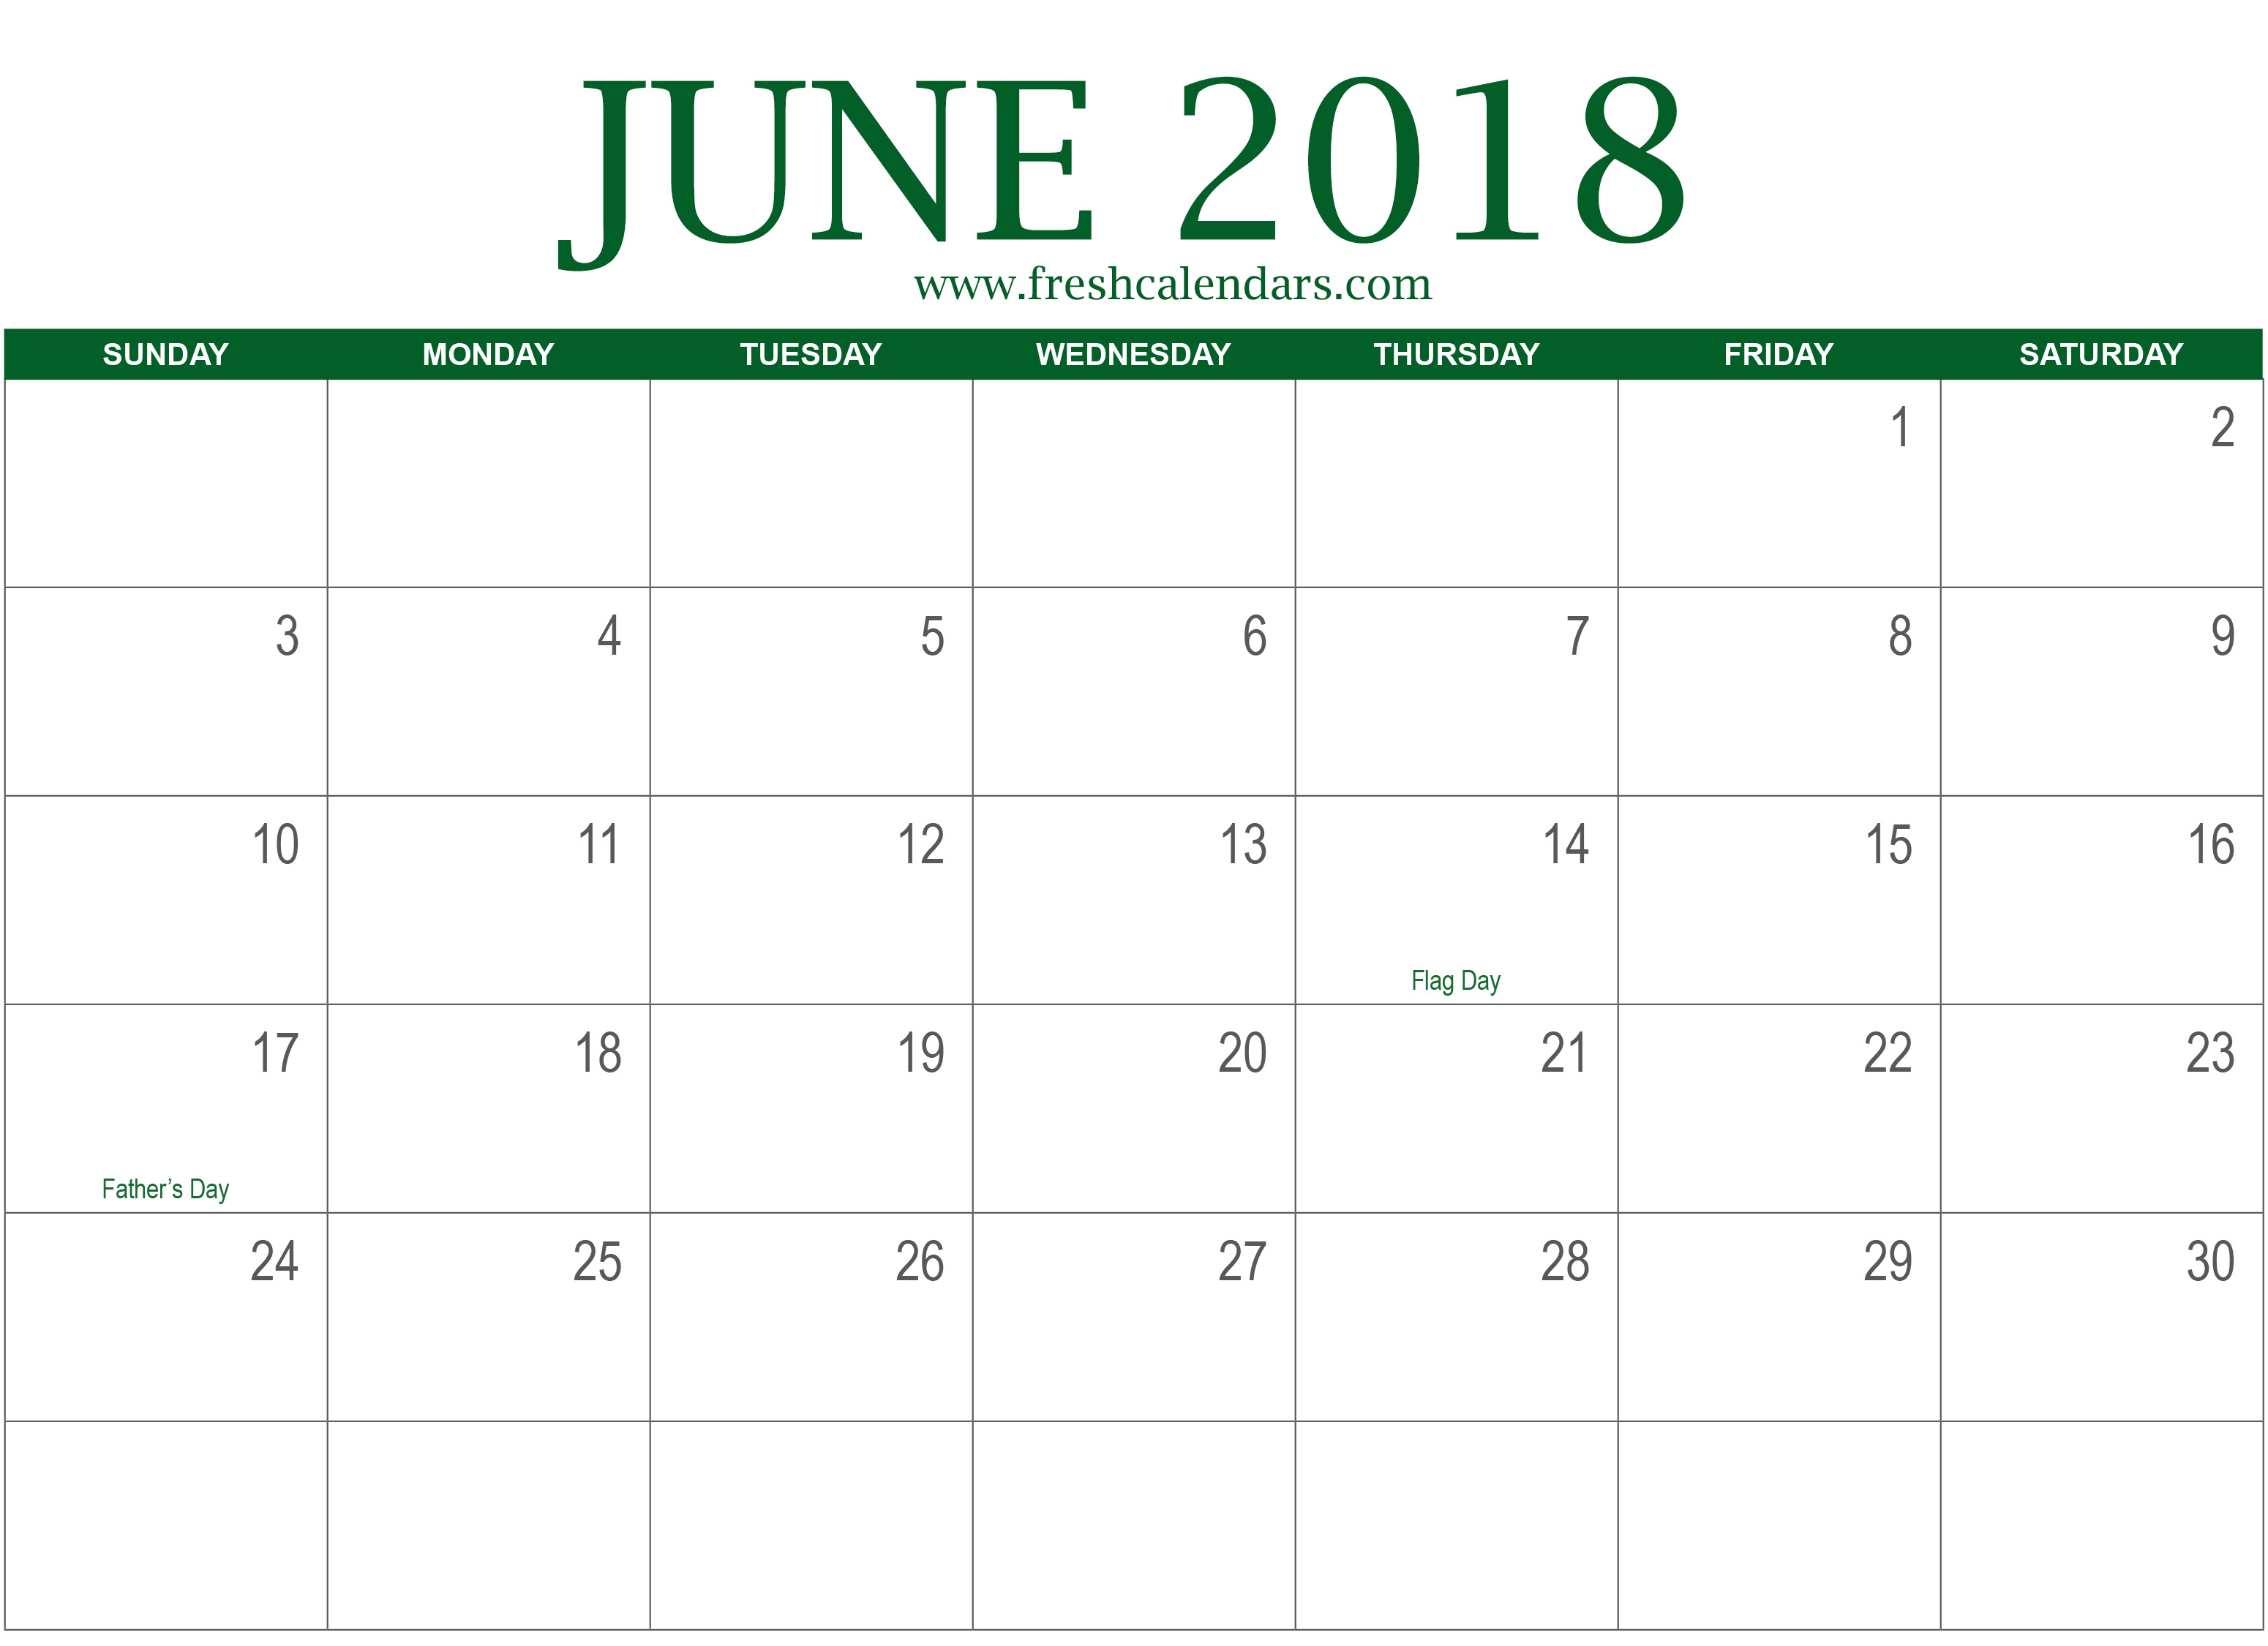 June 2018 Printable Calendar with Holidays Template